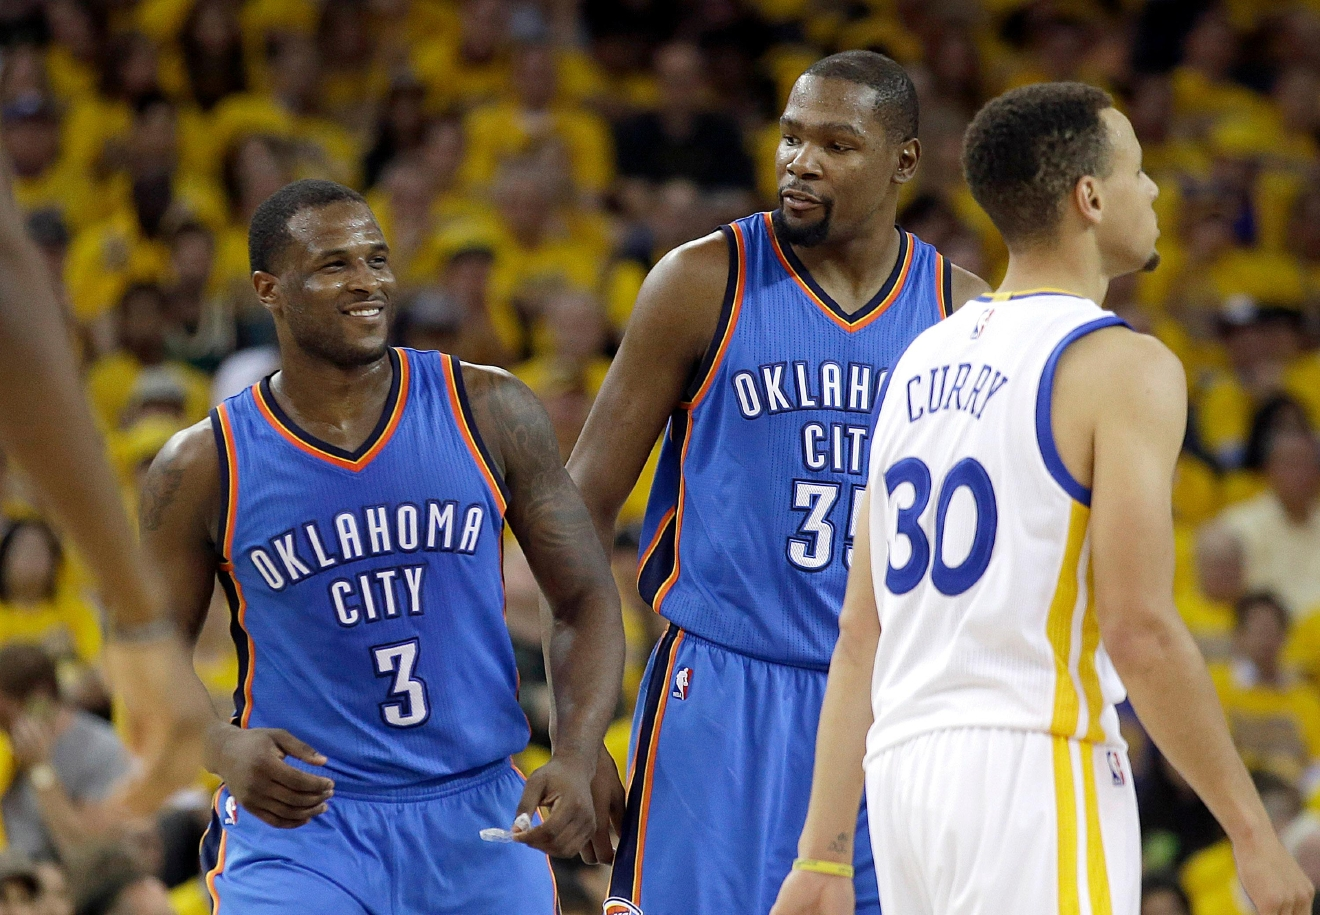 Oklahoma City Thunder guard Dion Waiters (3) smiles next to forward Kevin Durant (35) and Golden State Warriors guard Stephen Curry (30) during the first half of Game 2 of the NBA basketball Western Conference finals in Oakland, Calif., Wednesday, May 18, 2016. (AP Photo/Marcio Jose Sanchez)